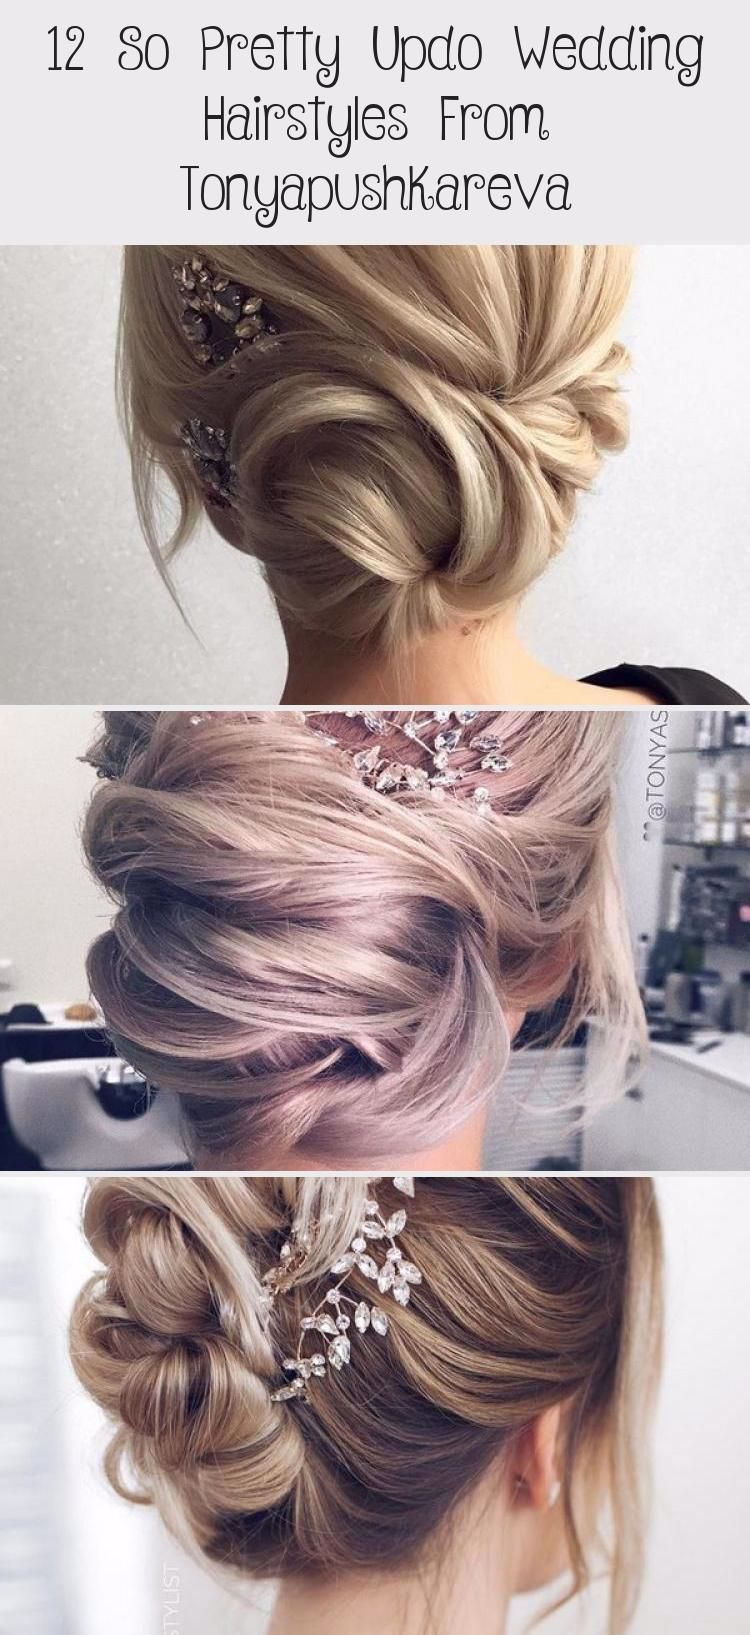 Side Prom Hairstyles for Long Hair, #Hairstyles #Long You are in the right  place about beach wedd… in 2020 | Prom hairstyles for long hair, Hair  styles, Beach wedding hair